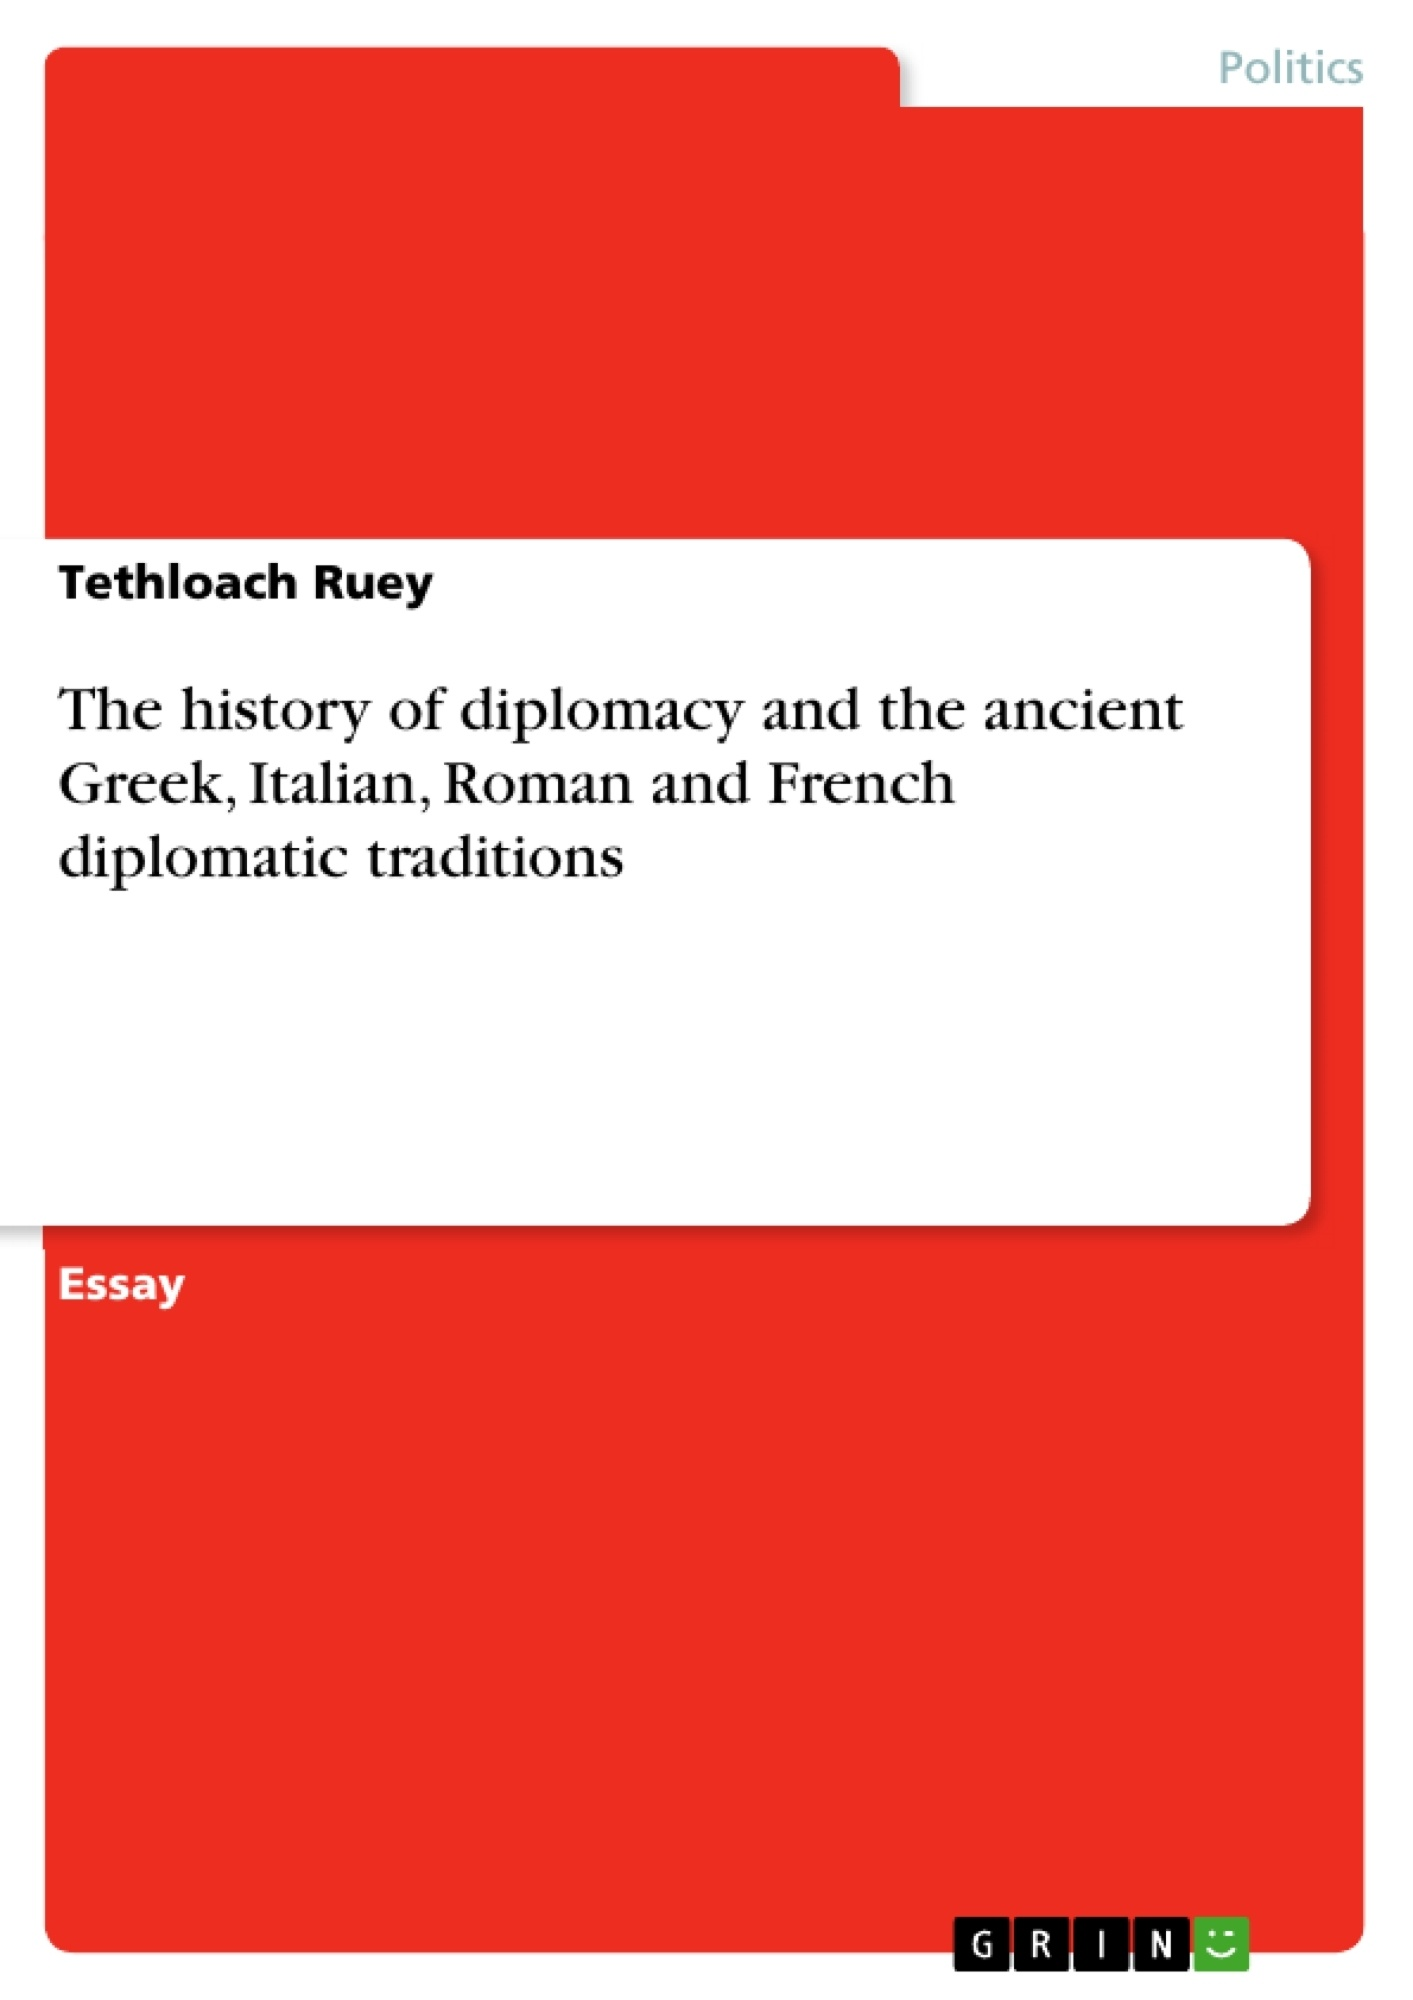 the history of diplomacy and the ancient greek italian r and upload your own papers earn money and win an iphone 7